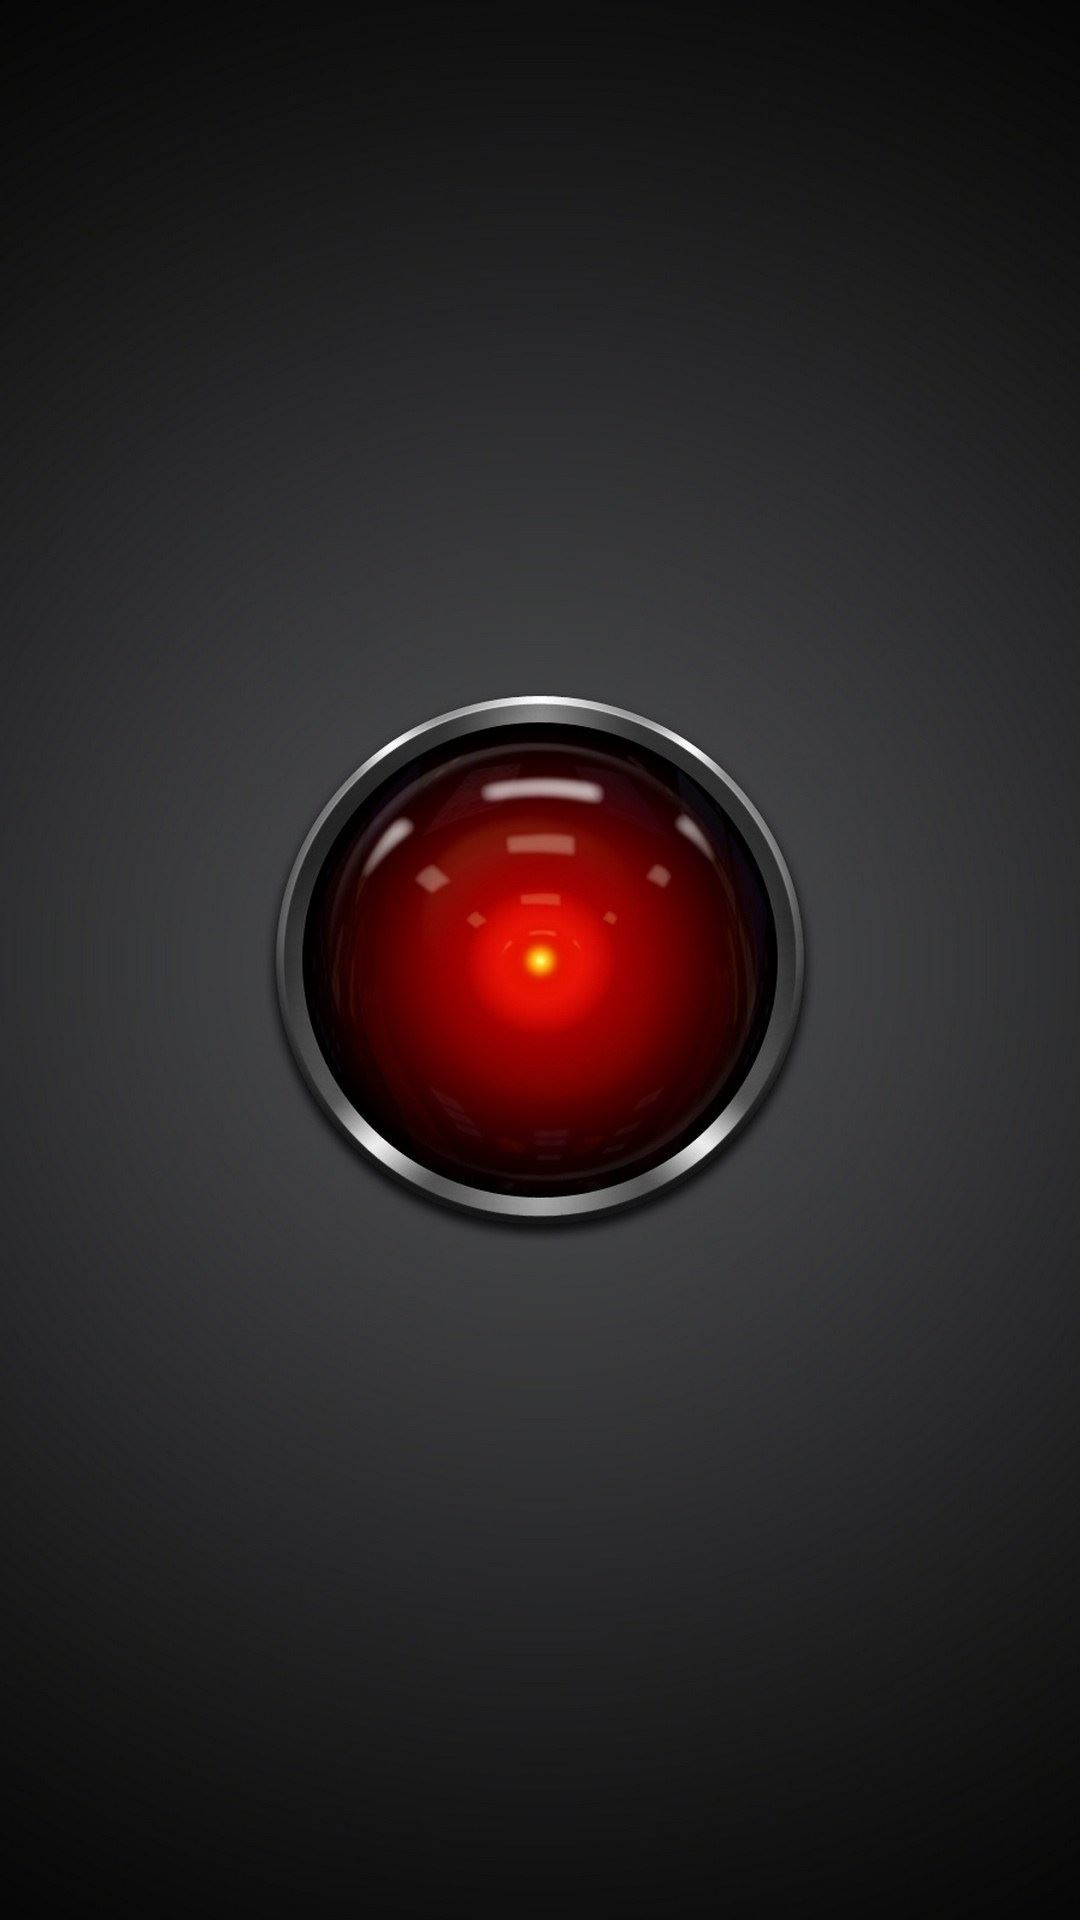 HAL 9000 2001 A Space Odyssey iPhone 6 Plus HD Wallpaper